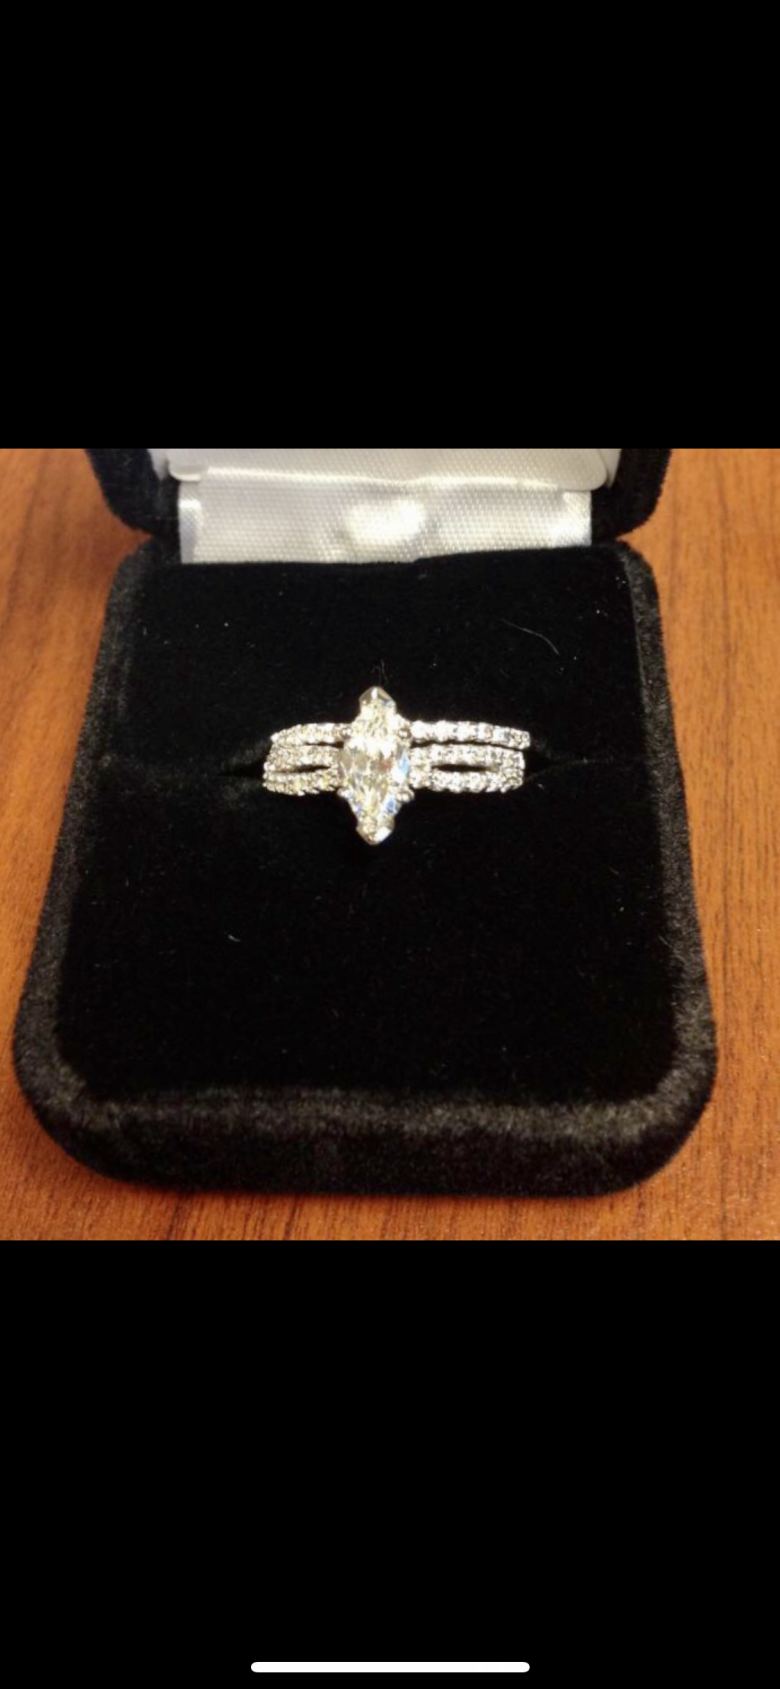 K. Cash Engagement Ring